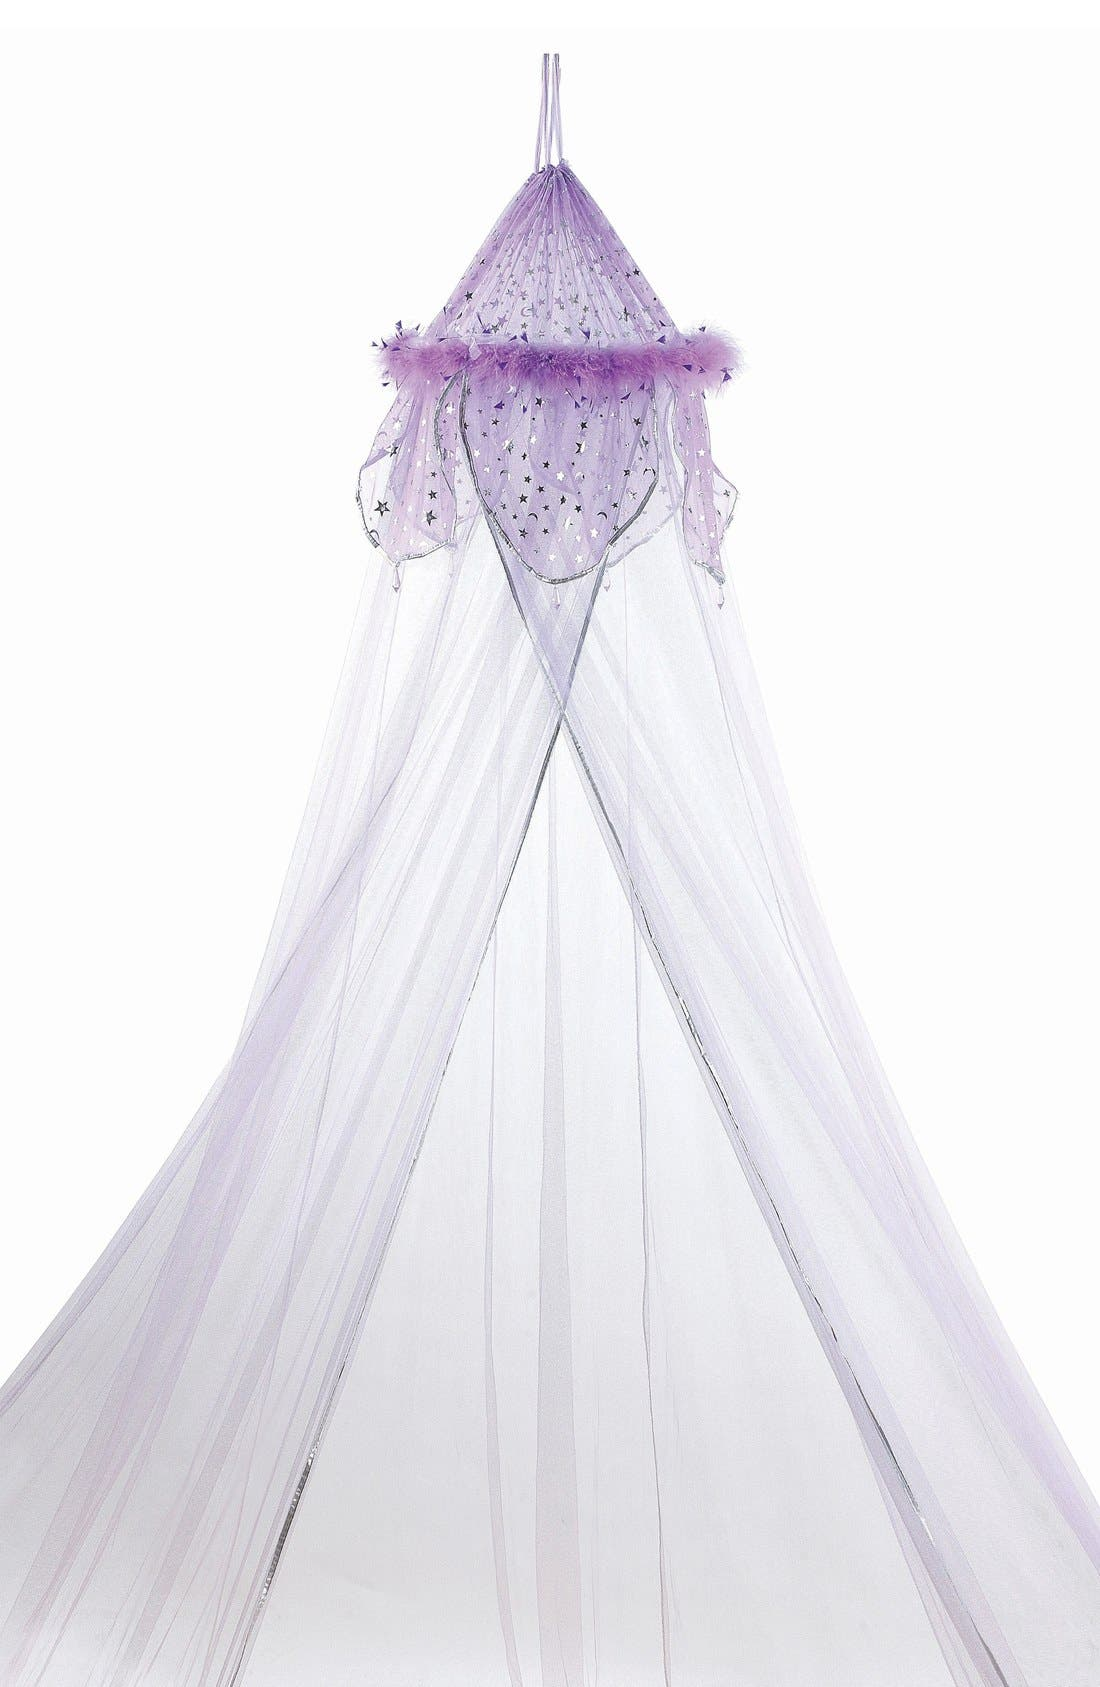 Alternate Image 1 Selected - 3C4G 'Lavender Fantasy' Bed Canopy